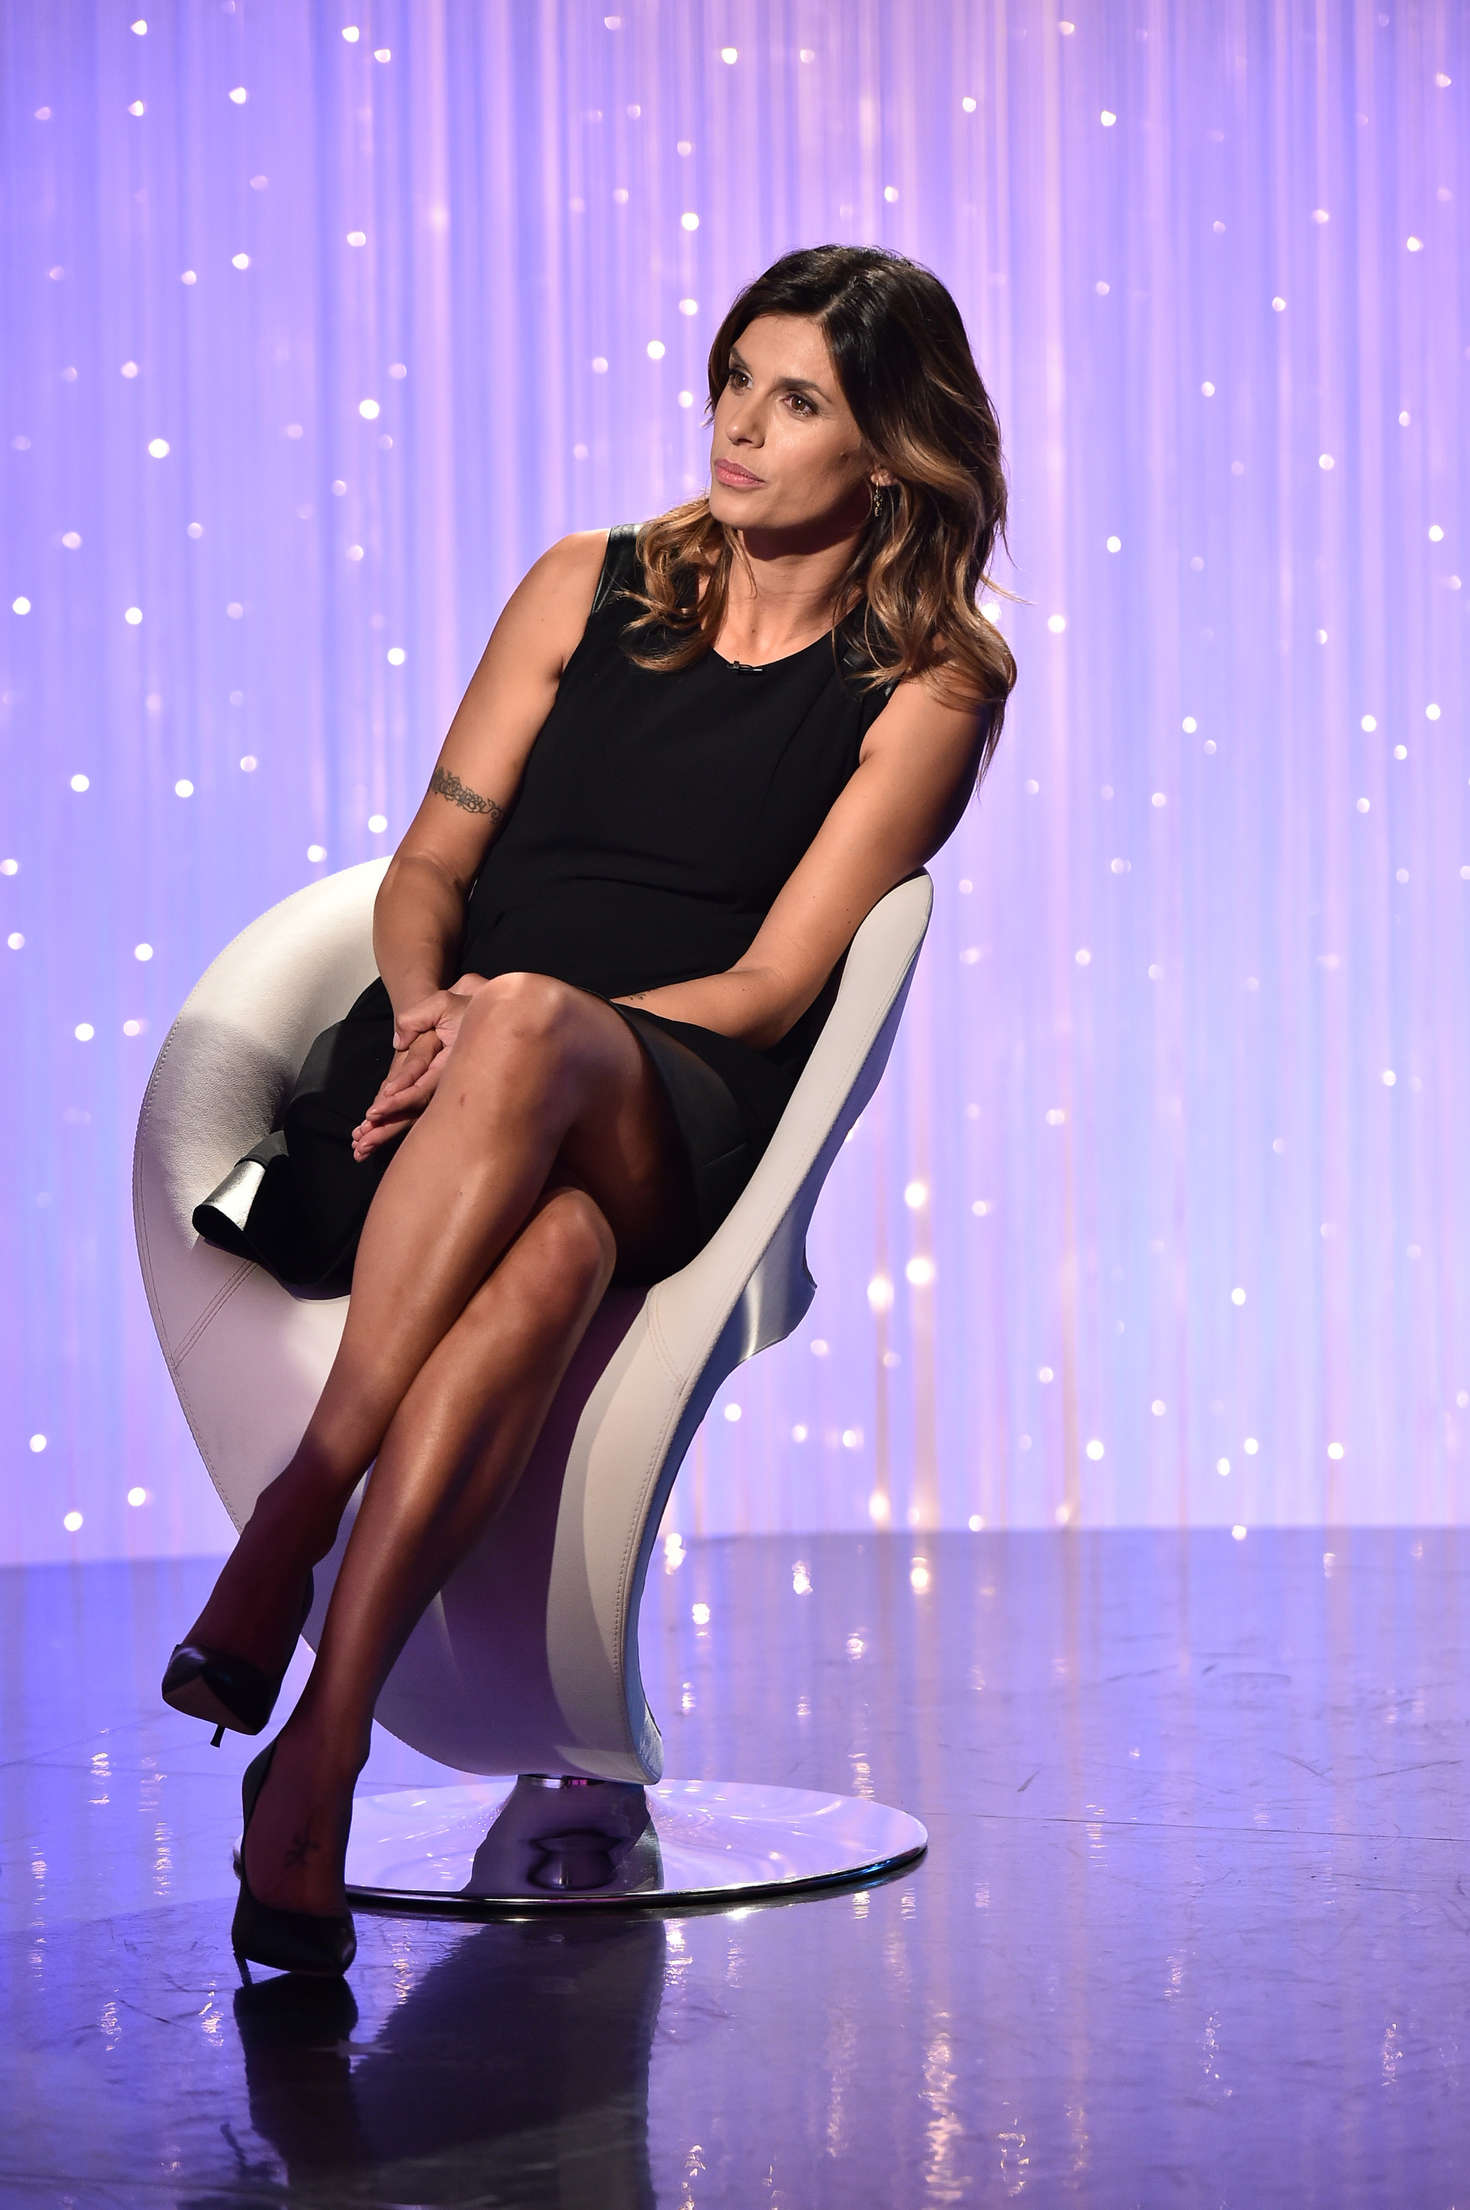 Elisabetta Canalis on the TV show Verissimo in Milan